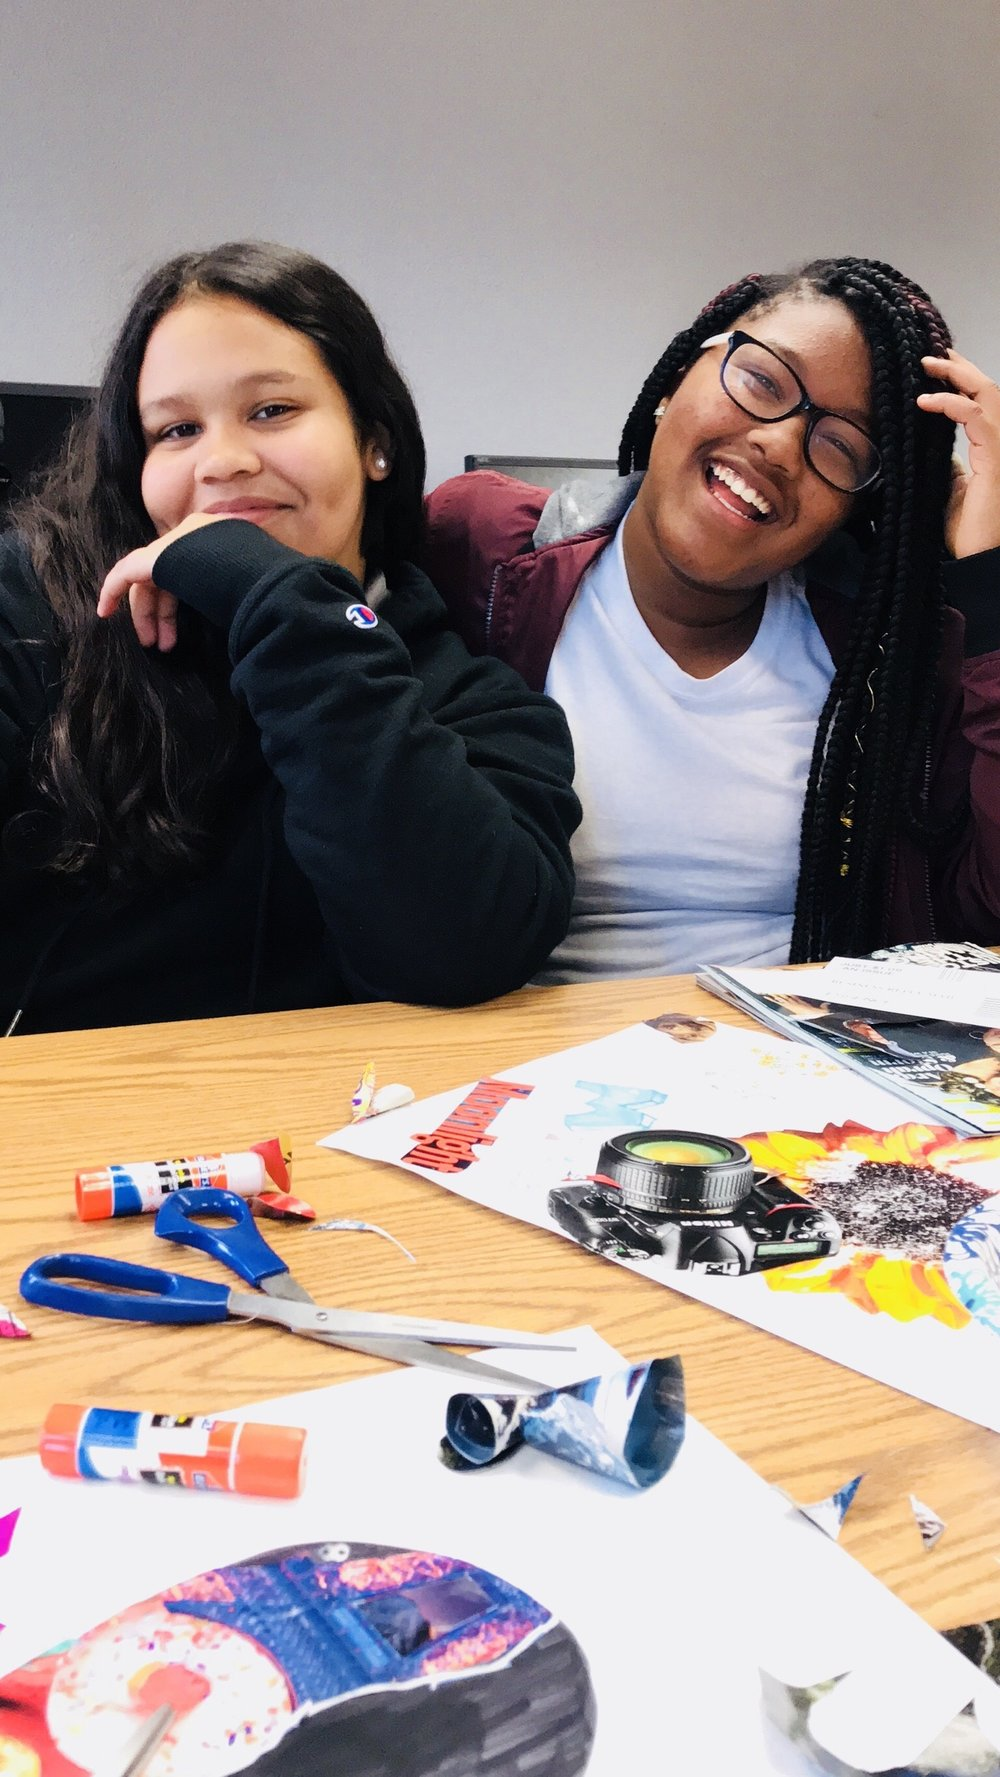 Say Cheese! - Students take a moment to smile for a picture as they work on their projects.